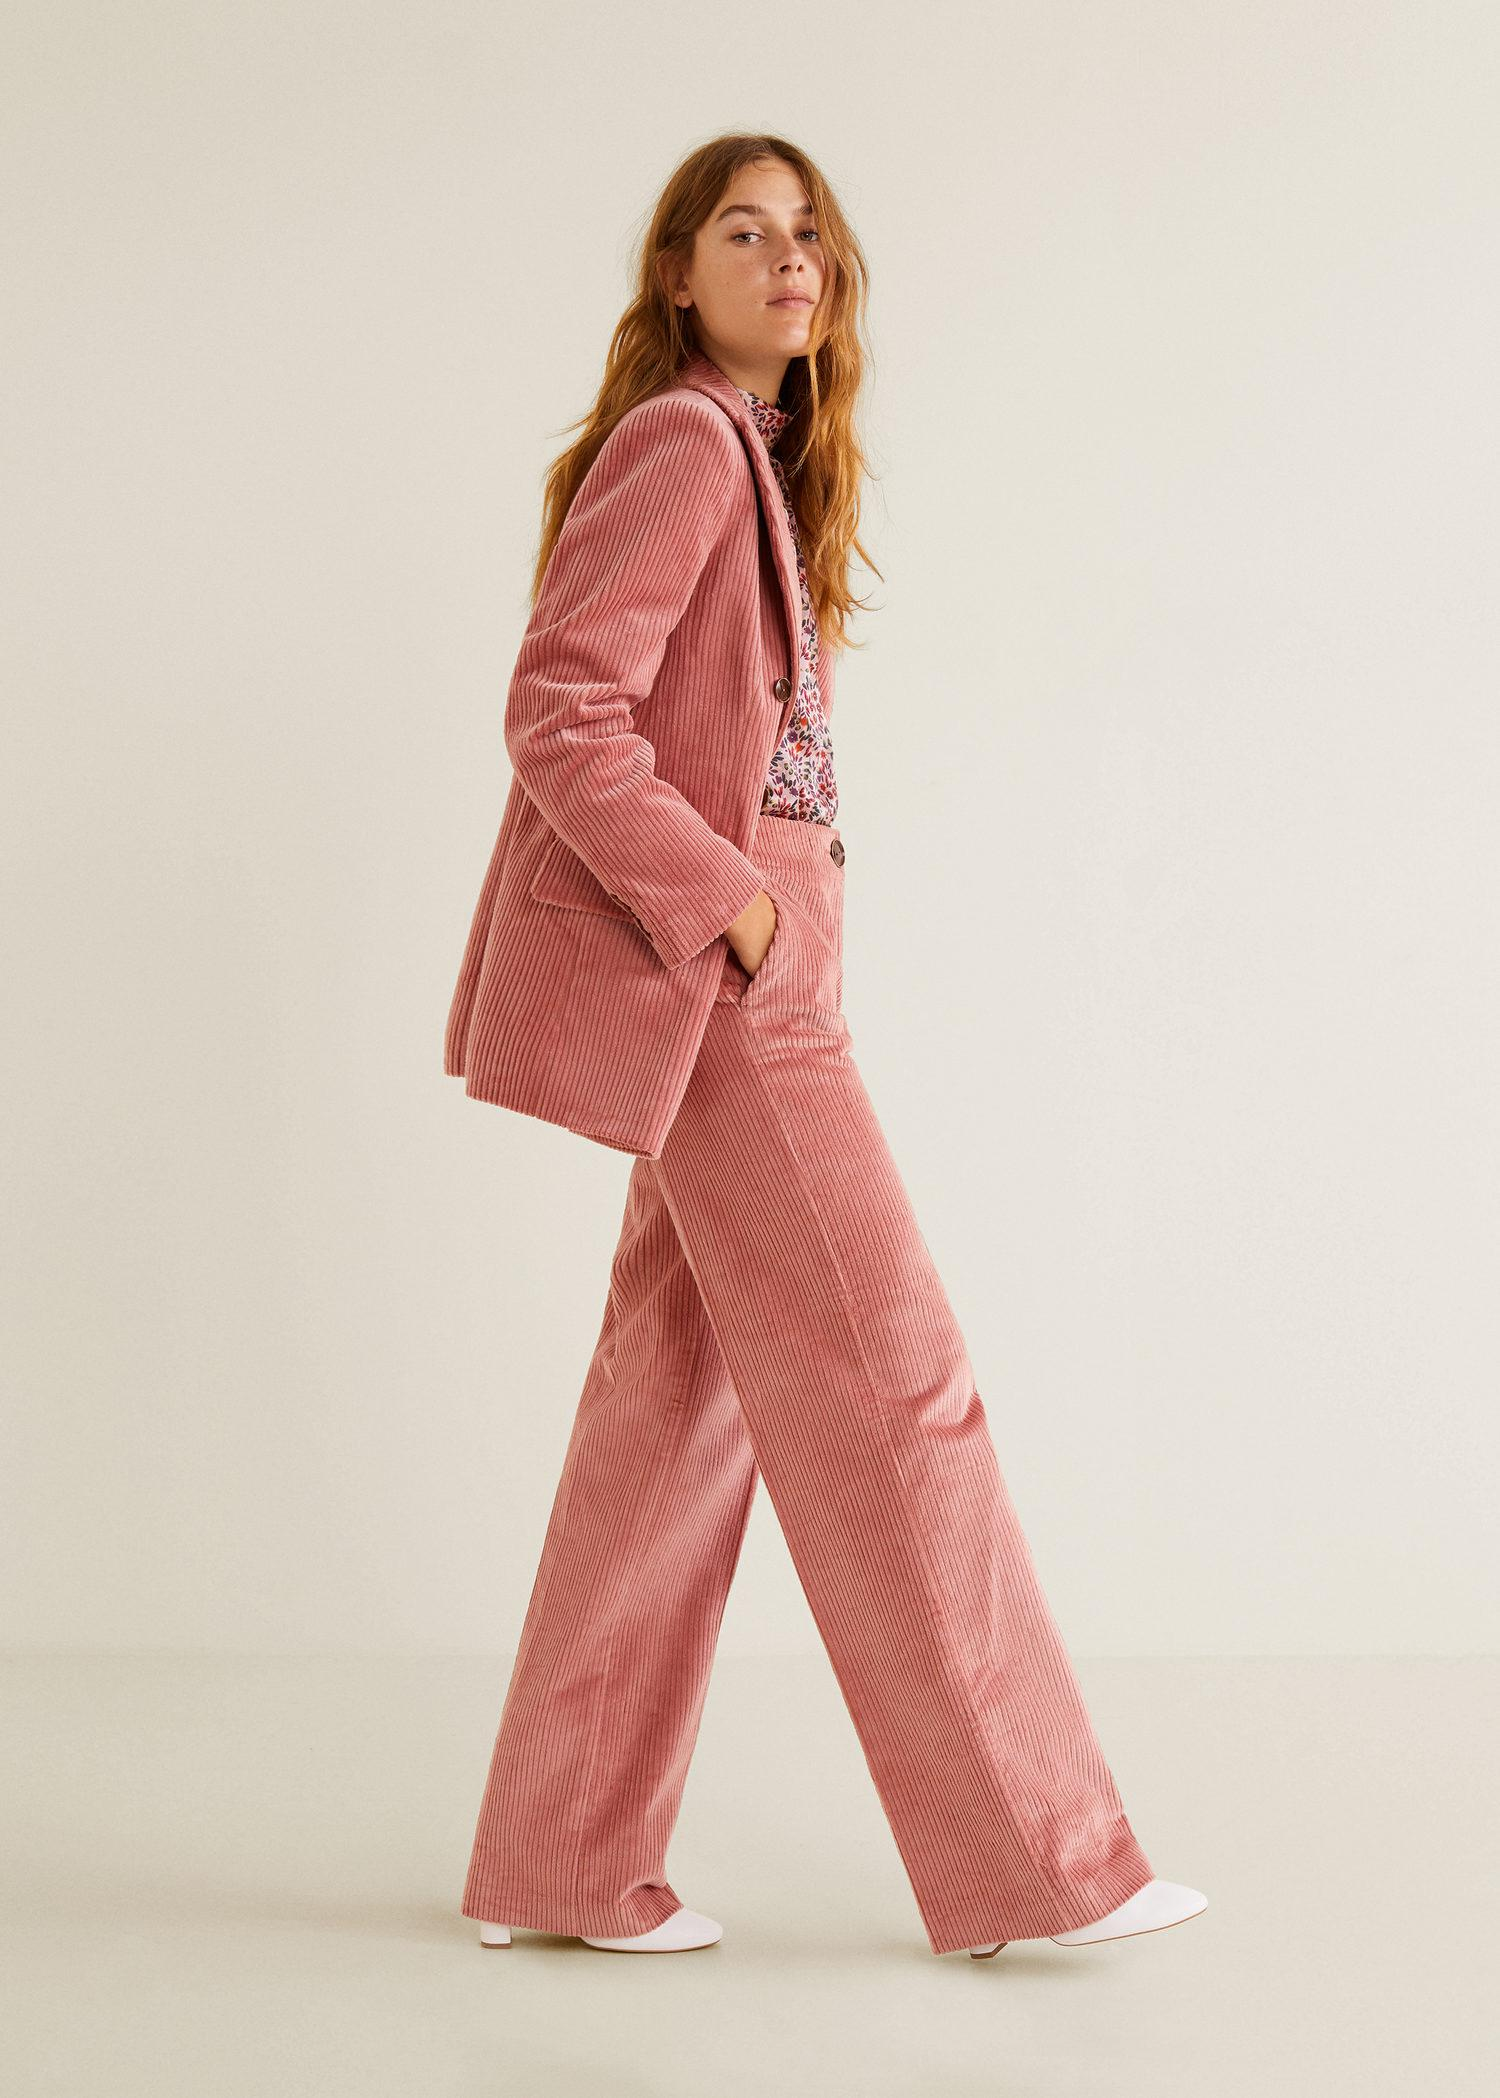 fca292eef0a87 Mango Corduroy Straight Trousers in Pink - Lyst